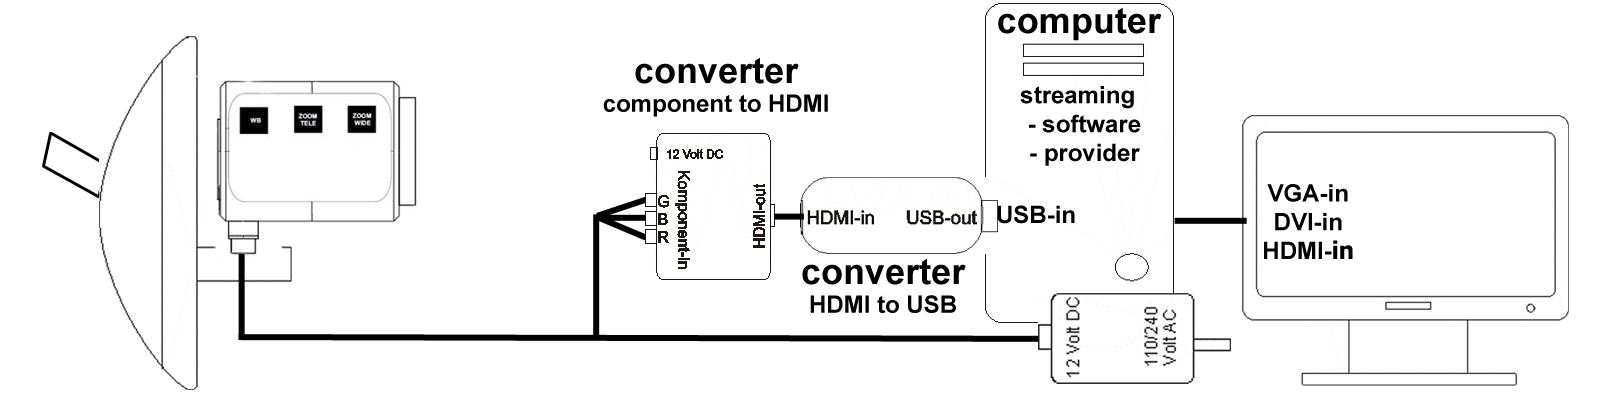 diagram thirdeye hd with computer for internet streaming